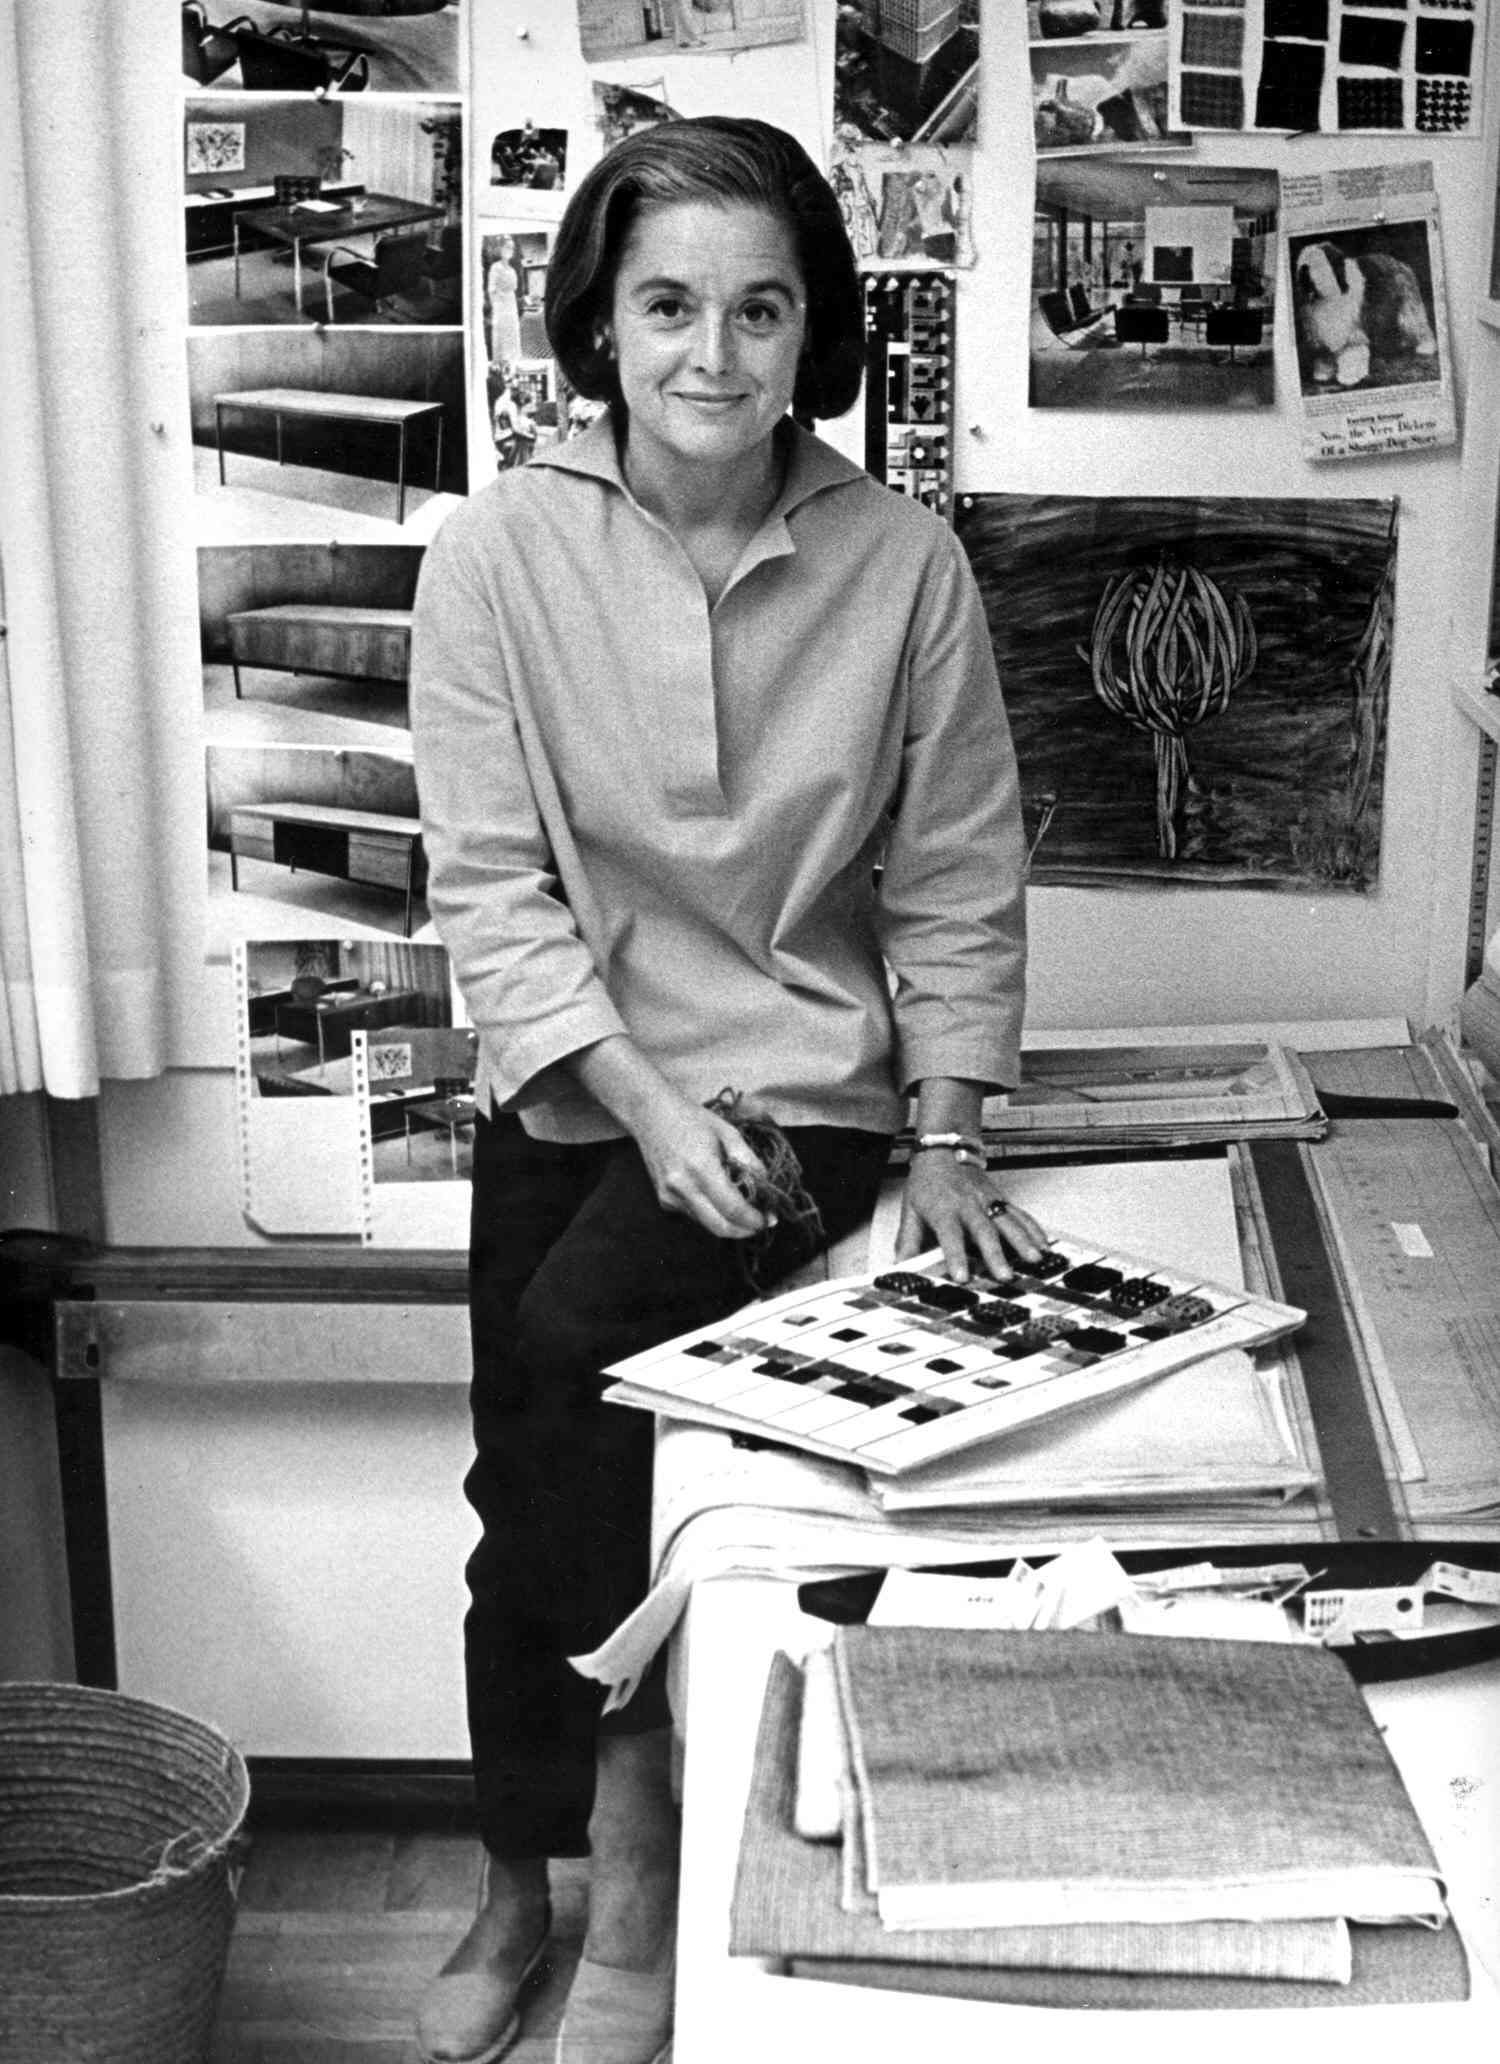 Portrait of American architect and furniture designer Florence Knoll Bassett as she sits on the edge of a table with a book of fabric swatches in front of her, 1961.